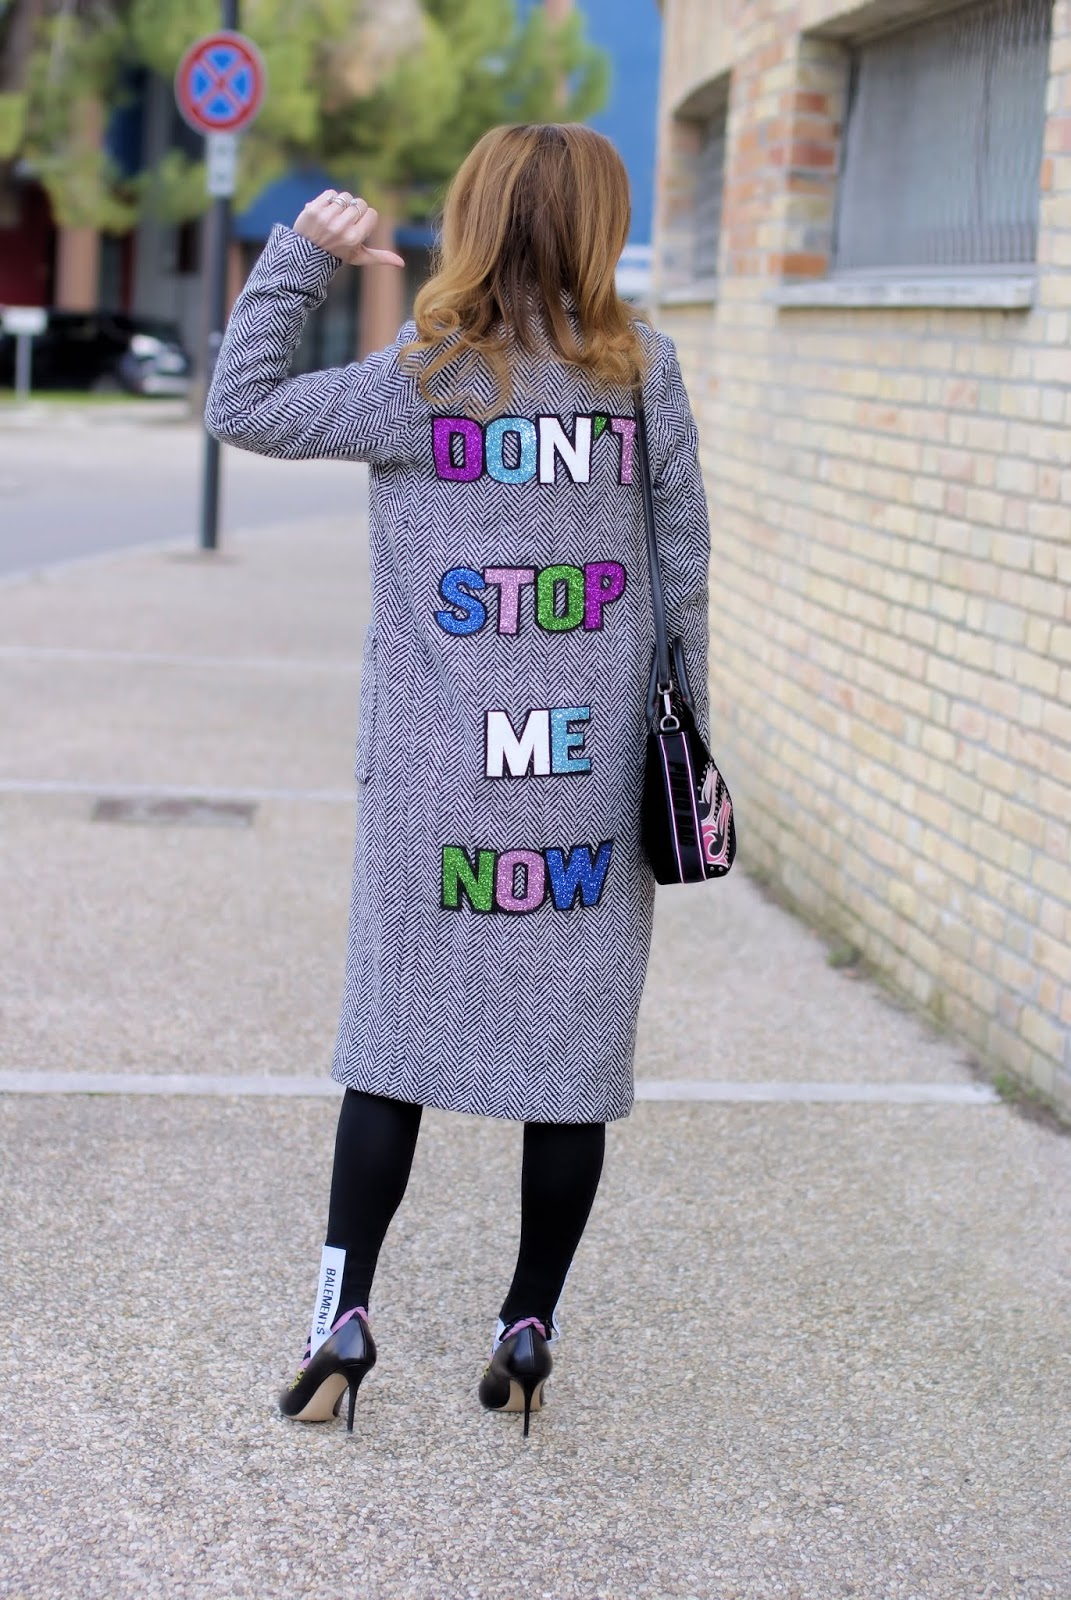 Don't stop me now: last outfit of 2018 with stirrup leggings on Fashion and Cookies fashion blog, fashion blogger style